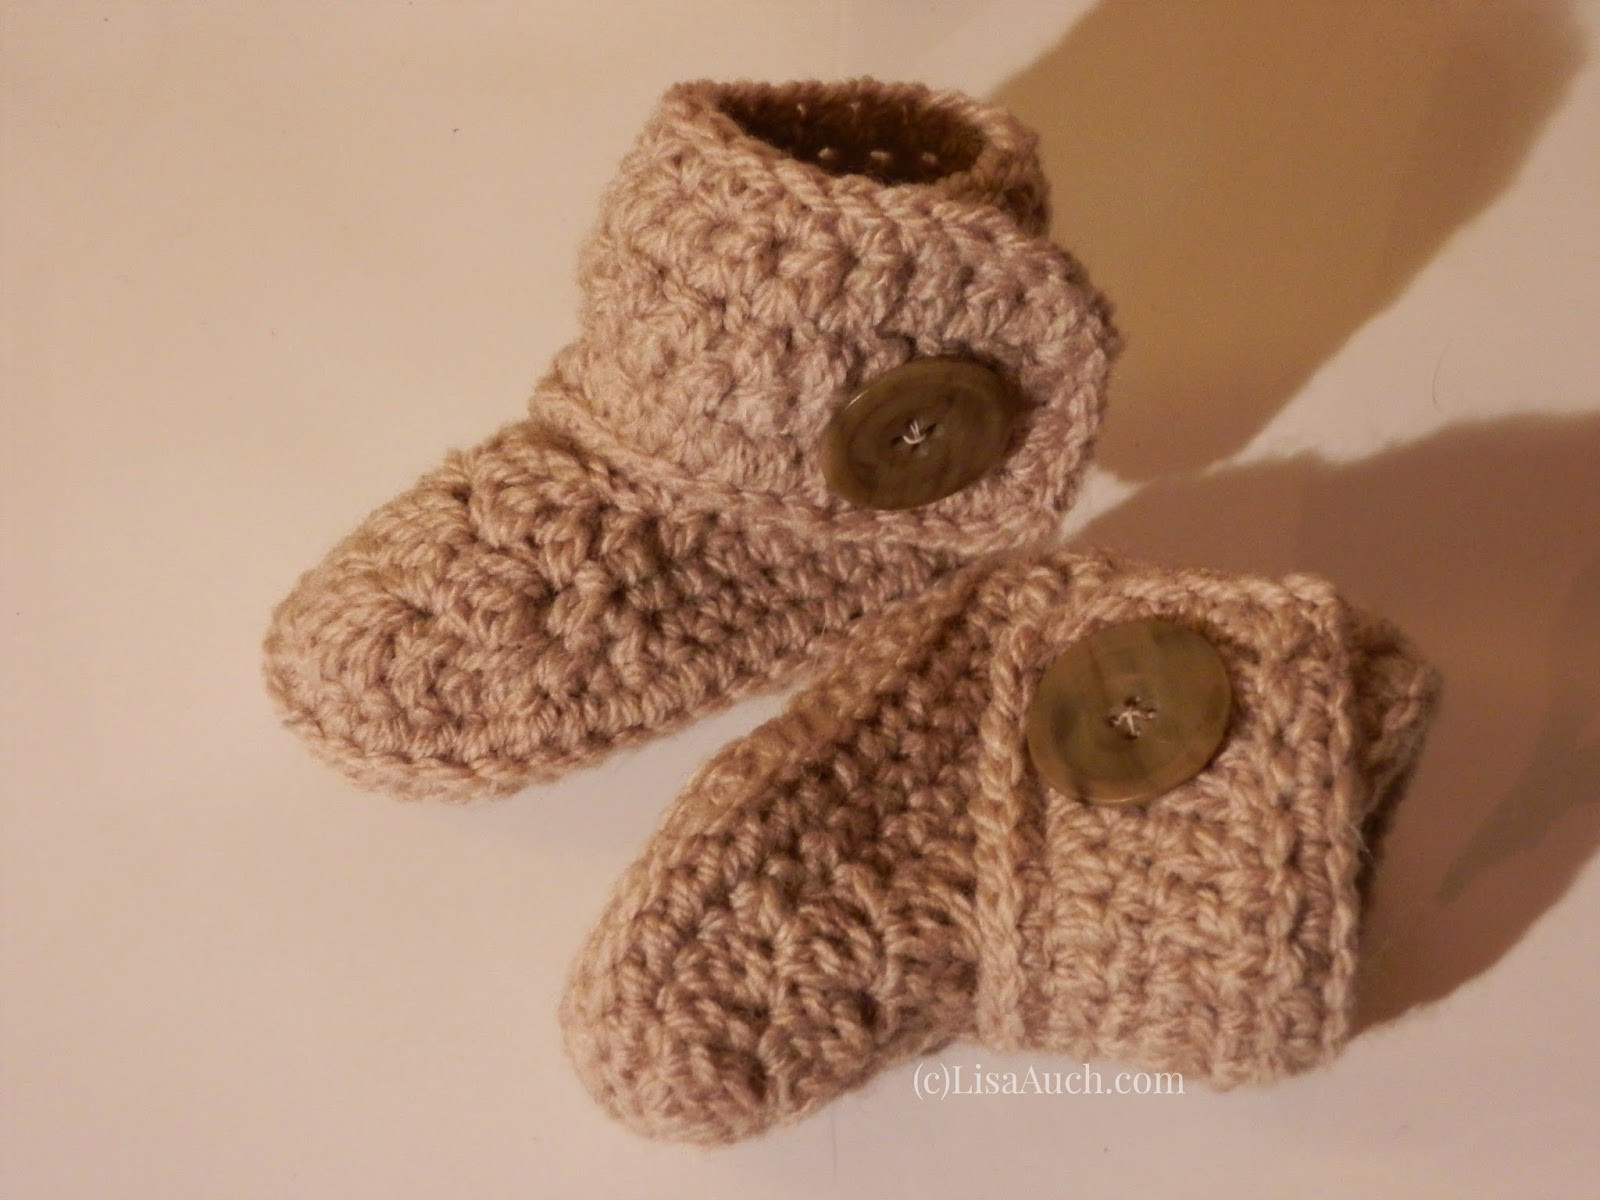 Crochet Baby Unique Crochet Baby Ankle Boots Free Pattern Of Marvelous 50 Ideas Crochet Baby